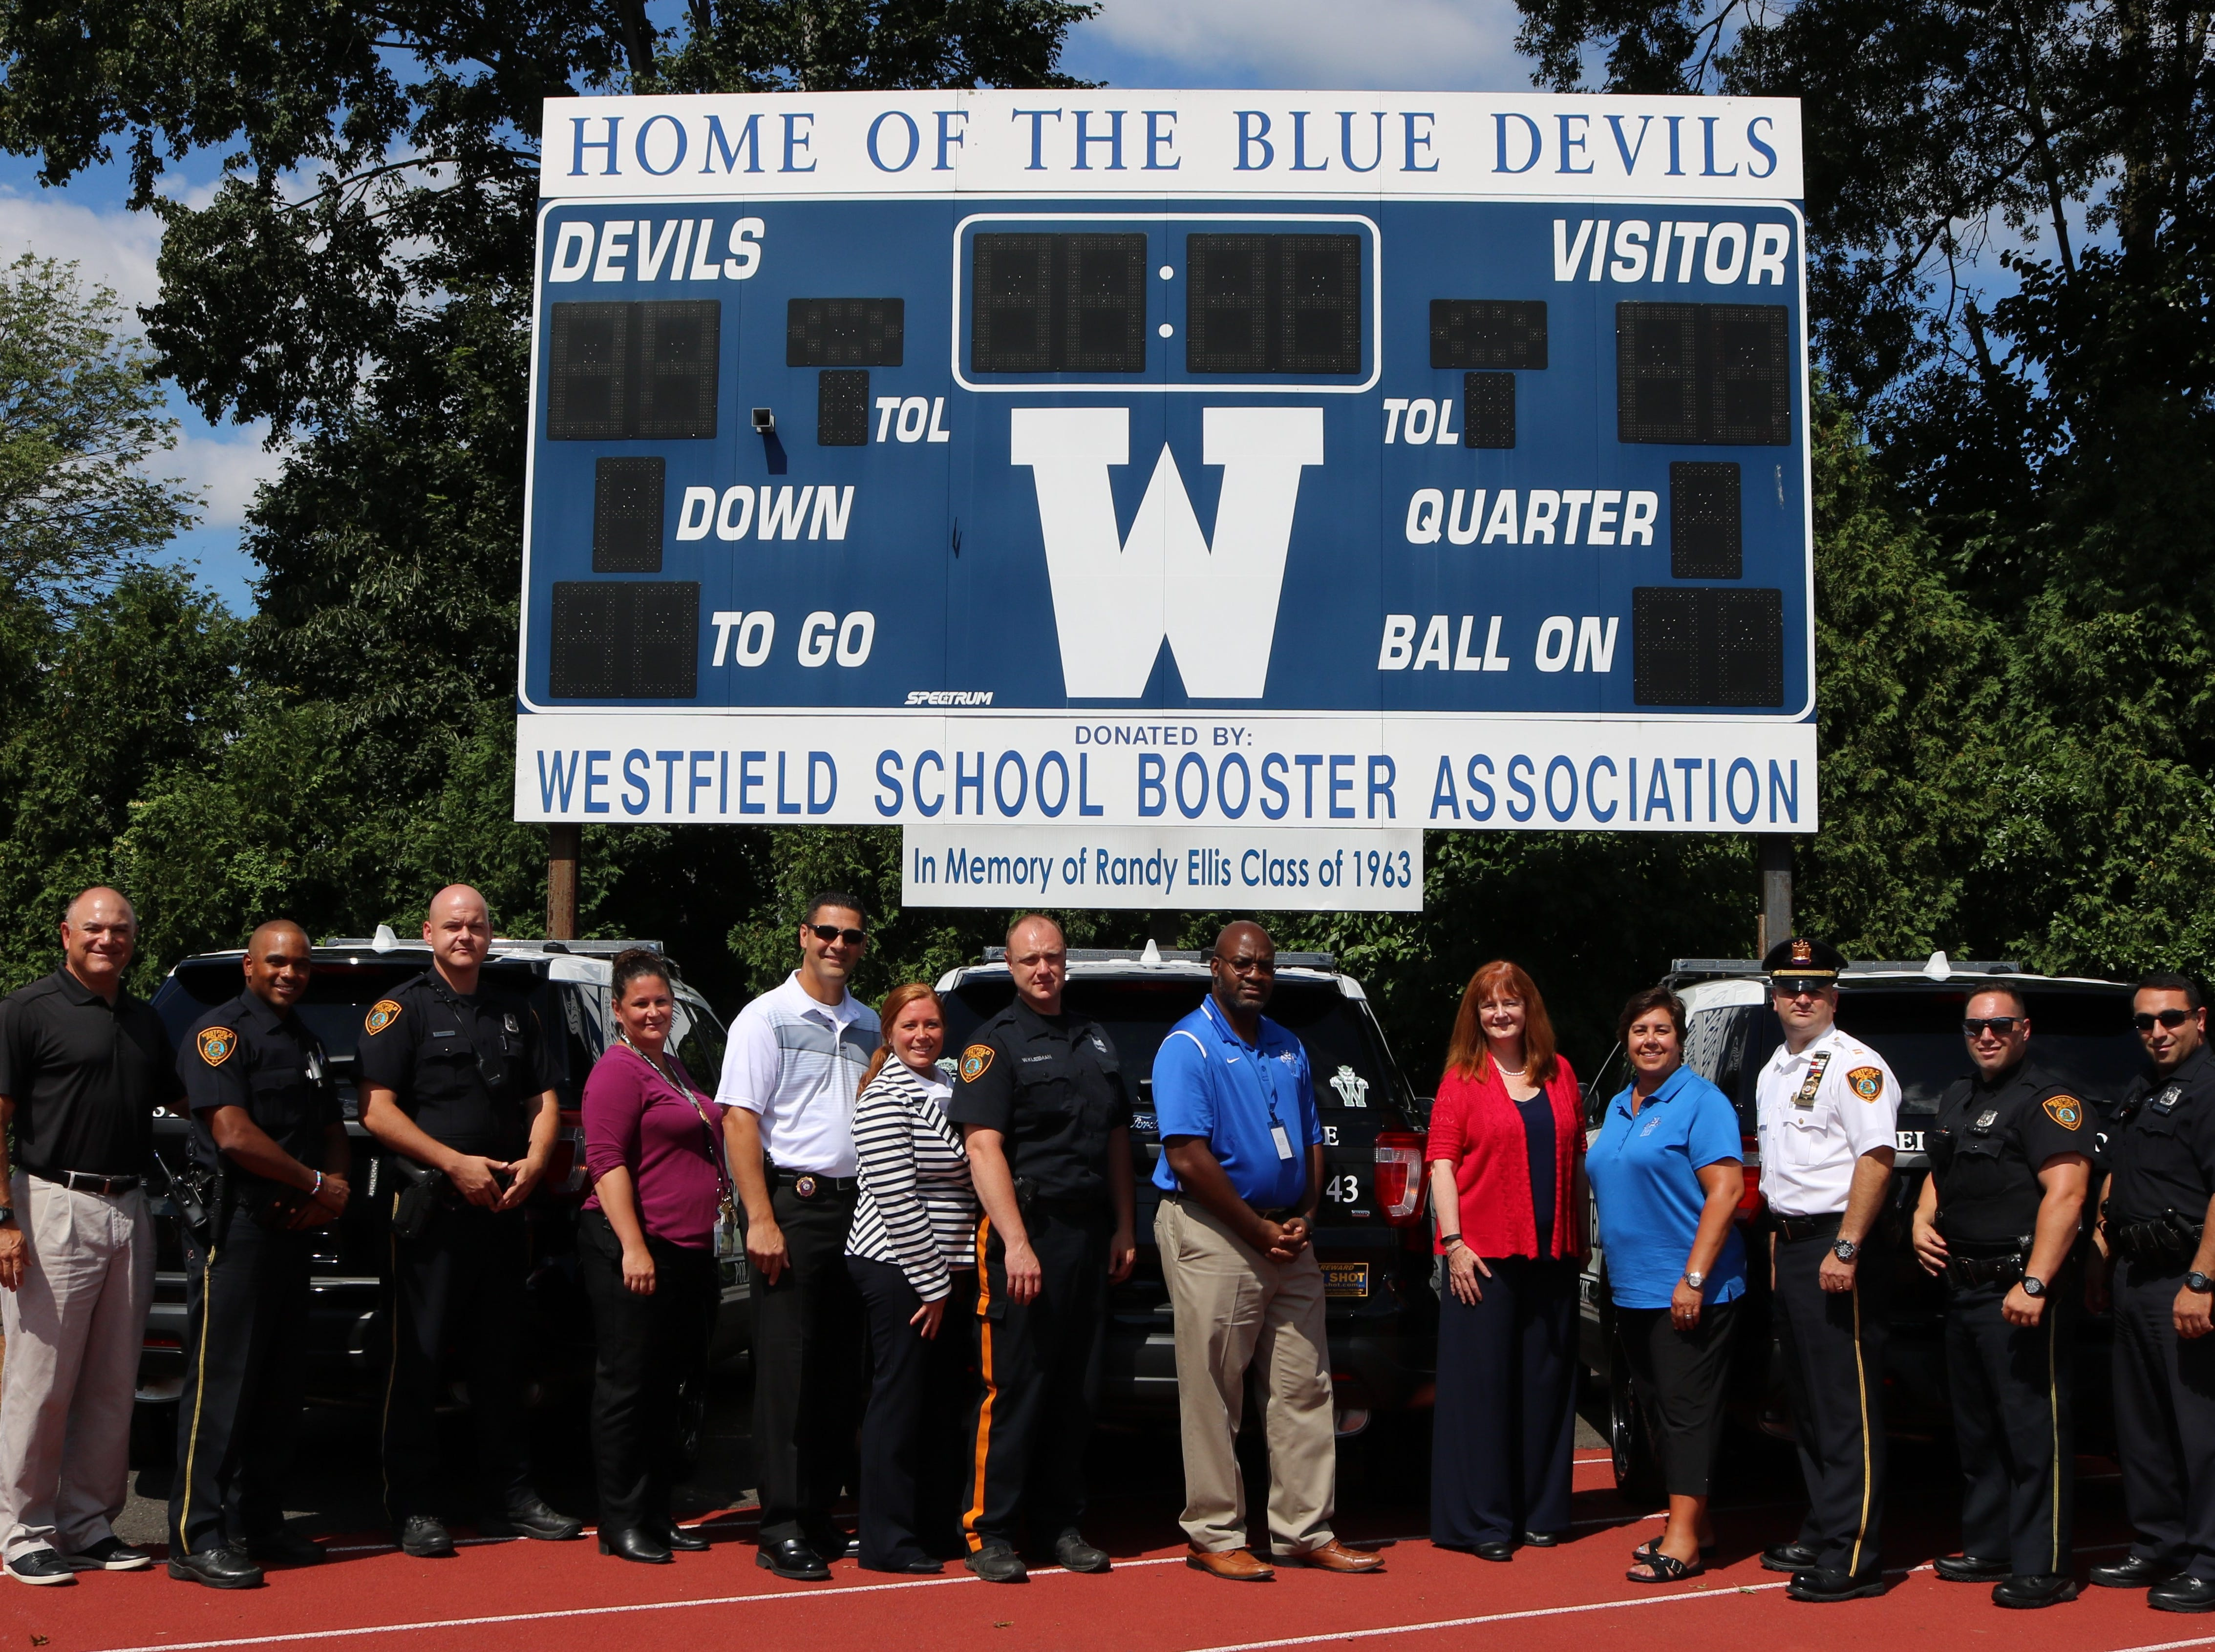 Westfield Police and school officials join together to display Blue Devil decals on more than 20 police vehicles, in support of student-athletes.  From left are:  Westfield High School Asst. Principal James DeSarno, School Resource Officer Ricardo Johnson, Officer Timothy Donovan, Detective Sergeant Nicole Stivale, Detective Lieutenant Jason Carter, WHS School Resource Officer Elizabeth Savnik, Officer William Kleeman, WHS Principal Derrick Nelson, Superintendent Dr. Margaret Dolan, WHS Athletic Director Sandra Mamary, Acting Chief of Police Christopher Battiloro, Officer Fortunato Riga and Officer Joseph Habeiche.